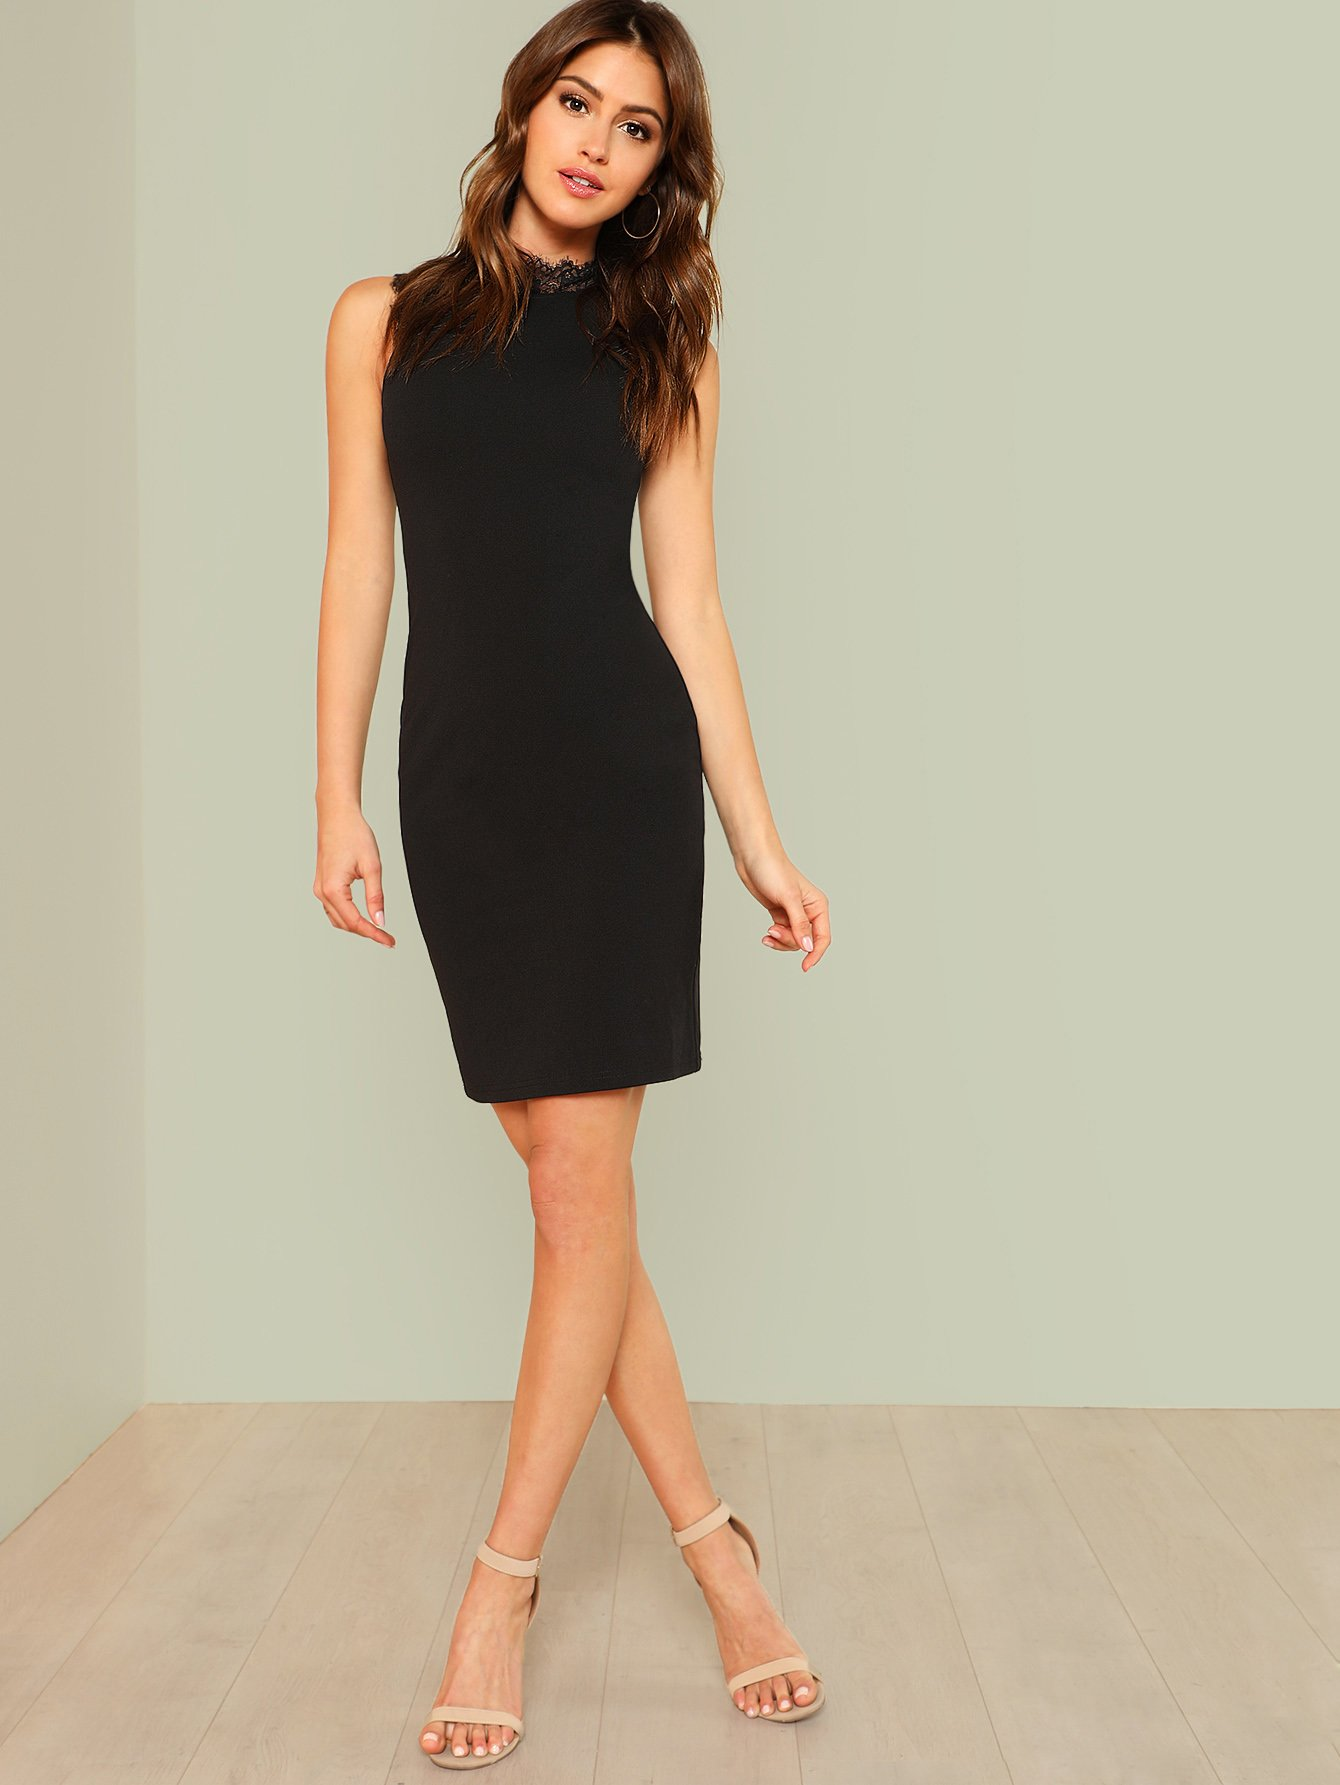 Lace Trim Form Fitted Dress